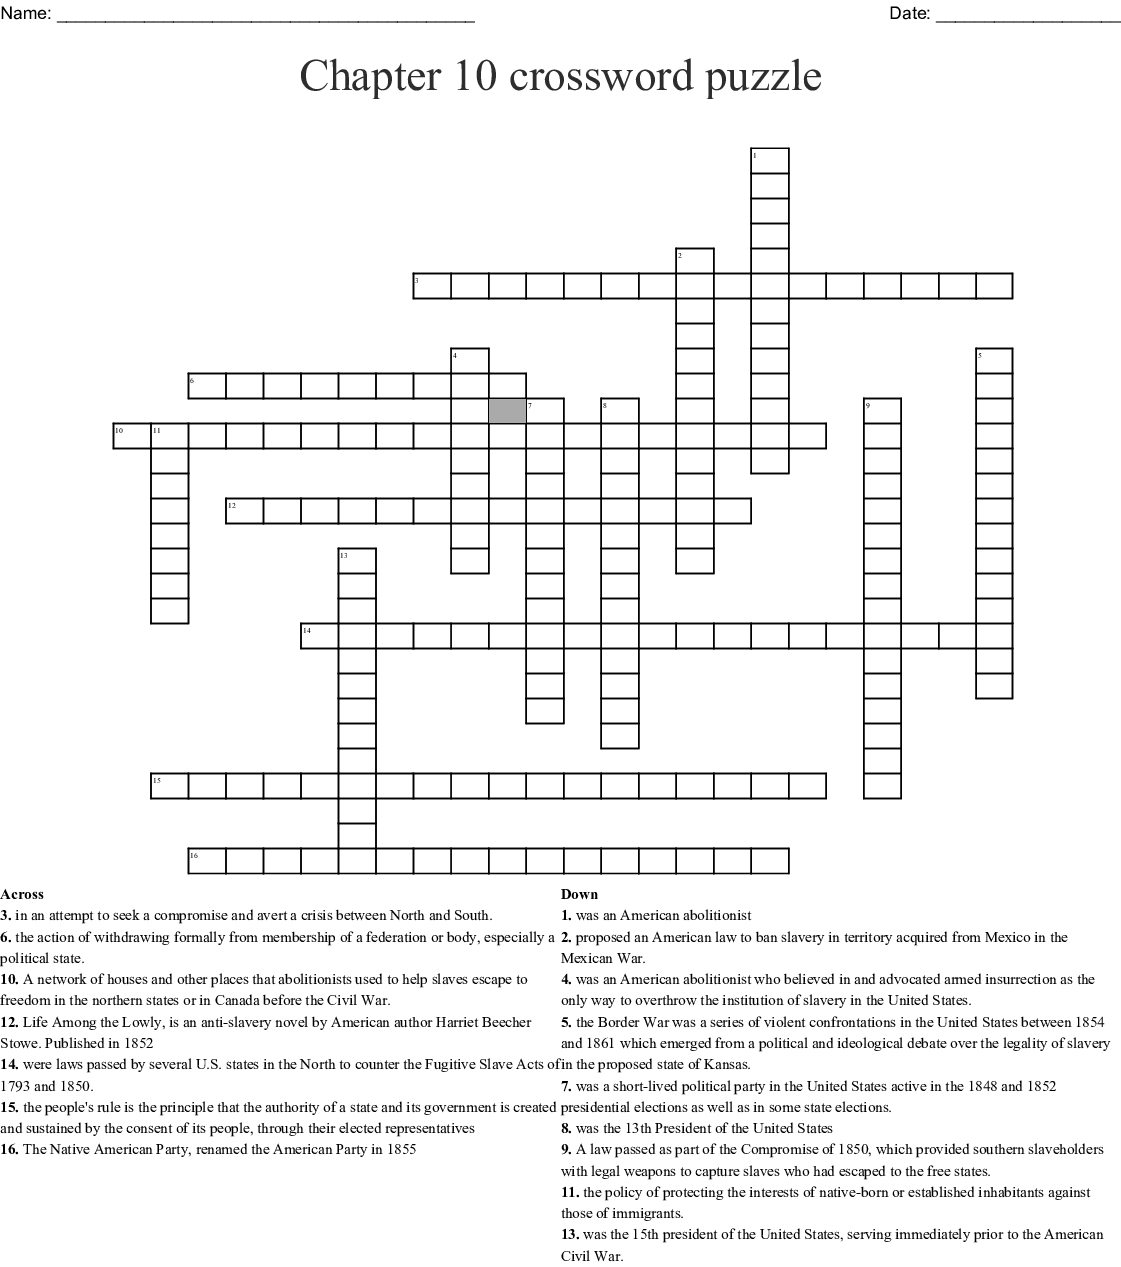 Chapter 10 Crossword Puzzle